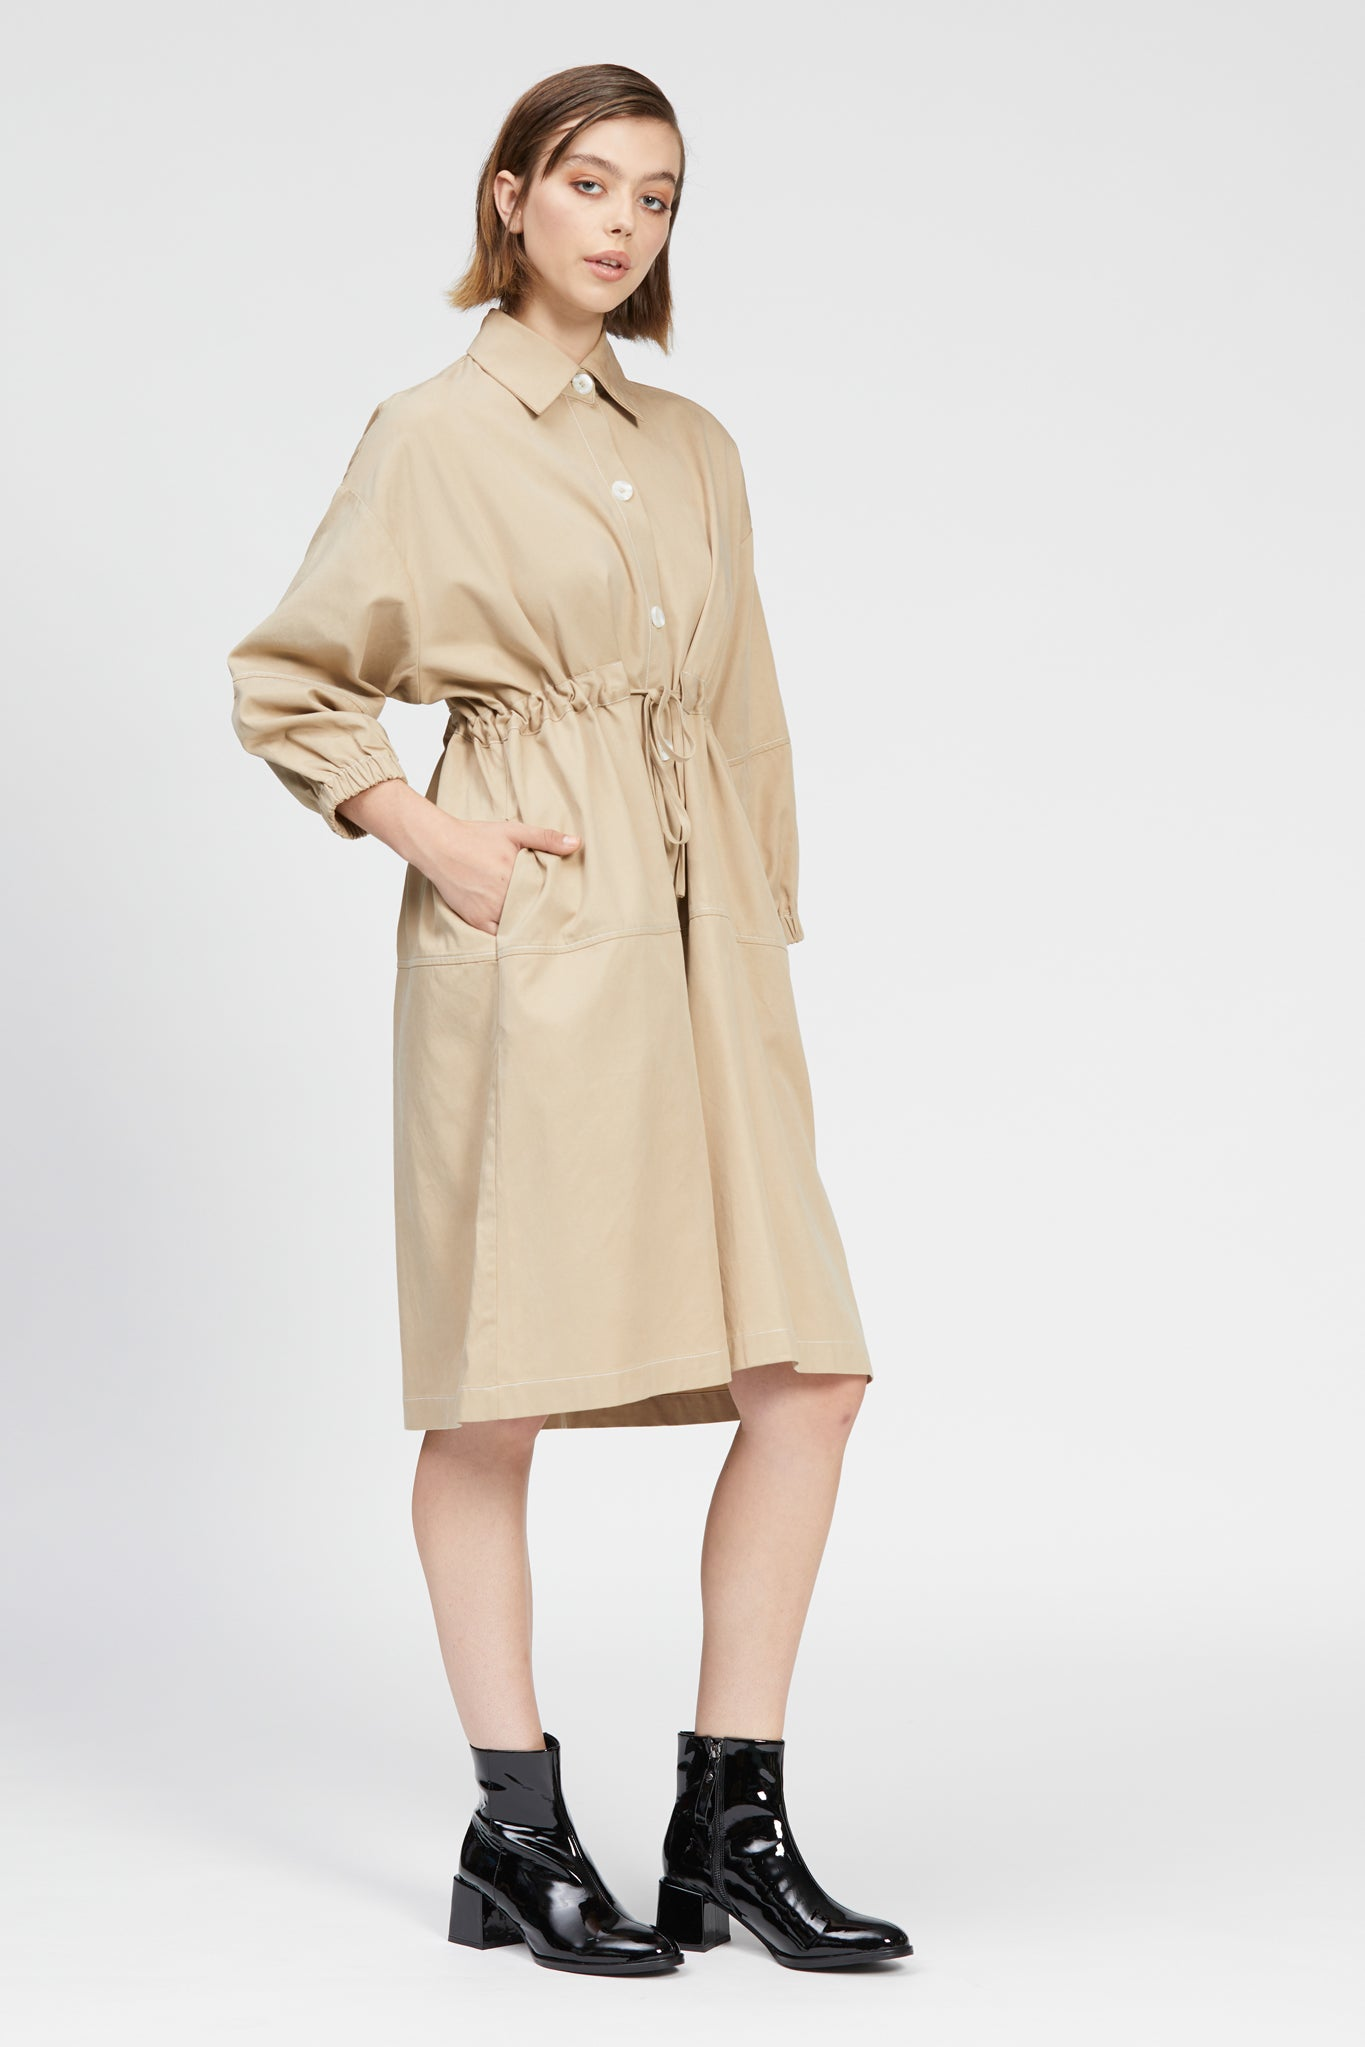 cadore dress beige